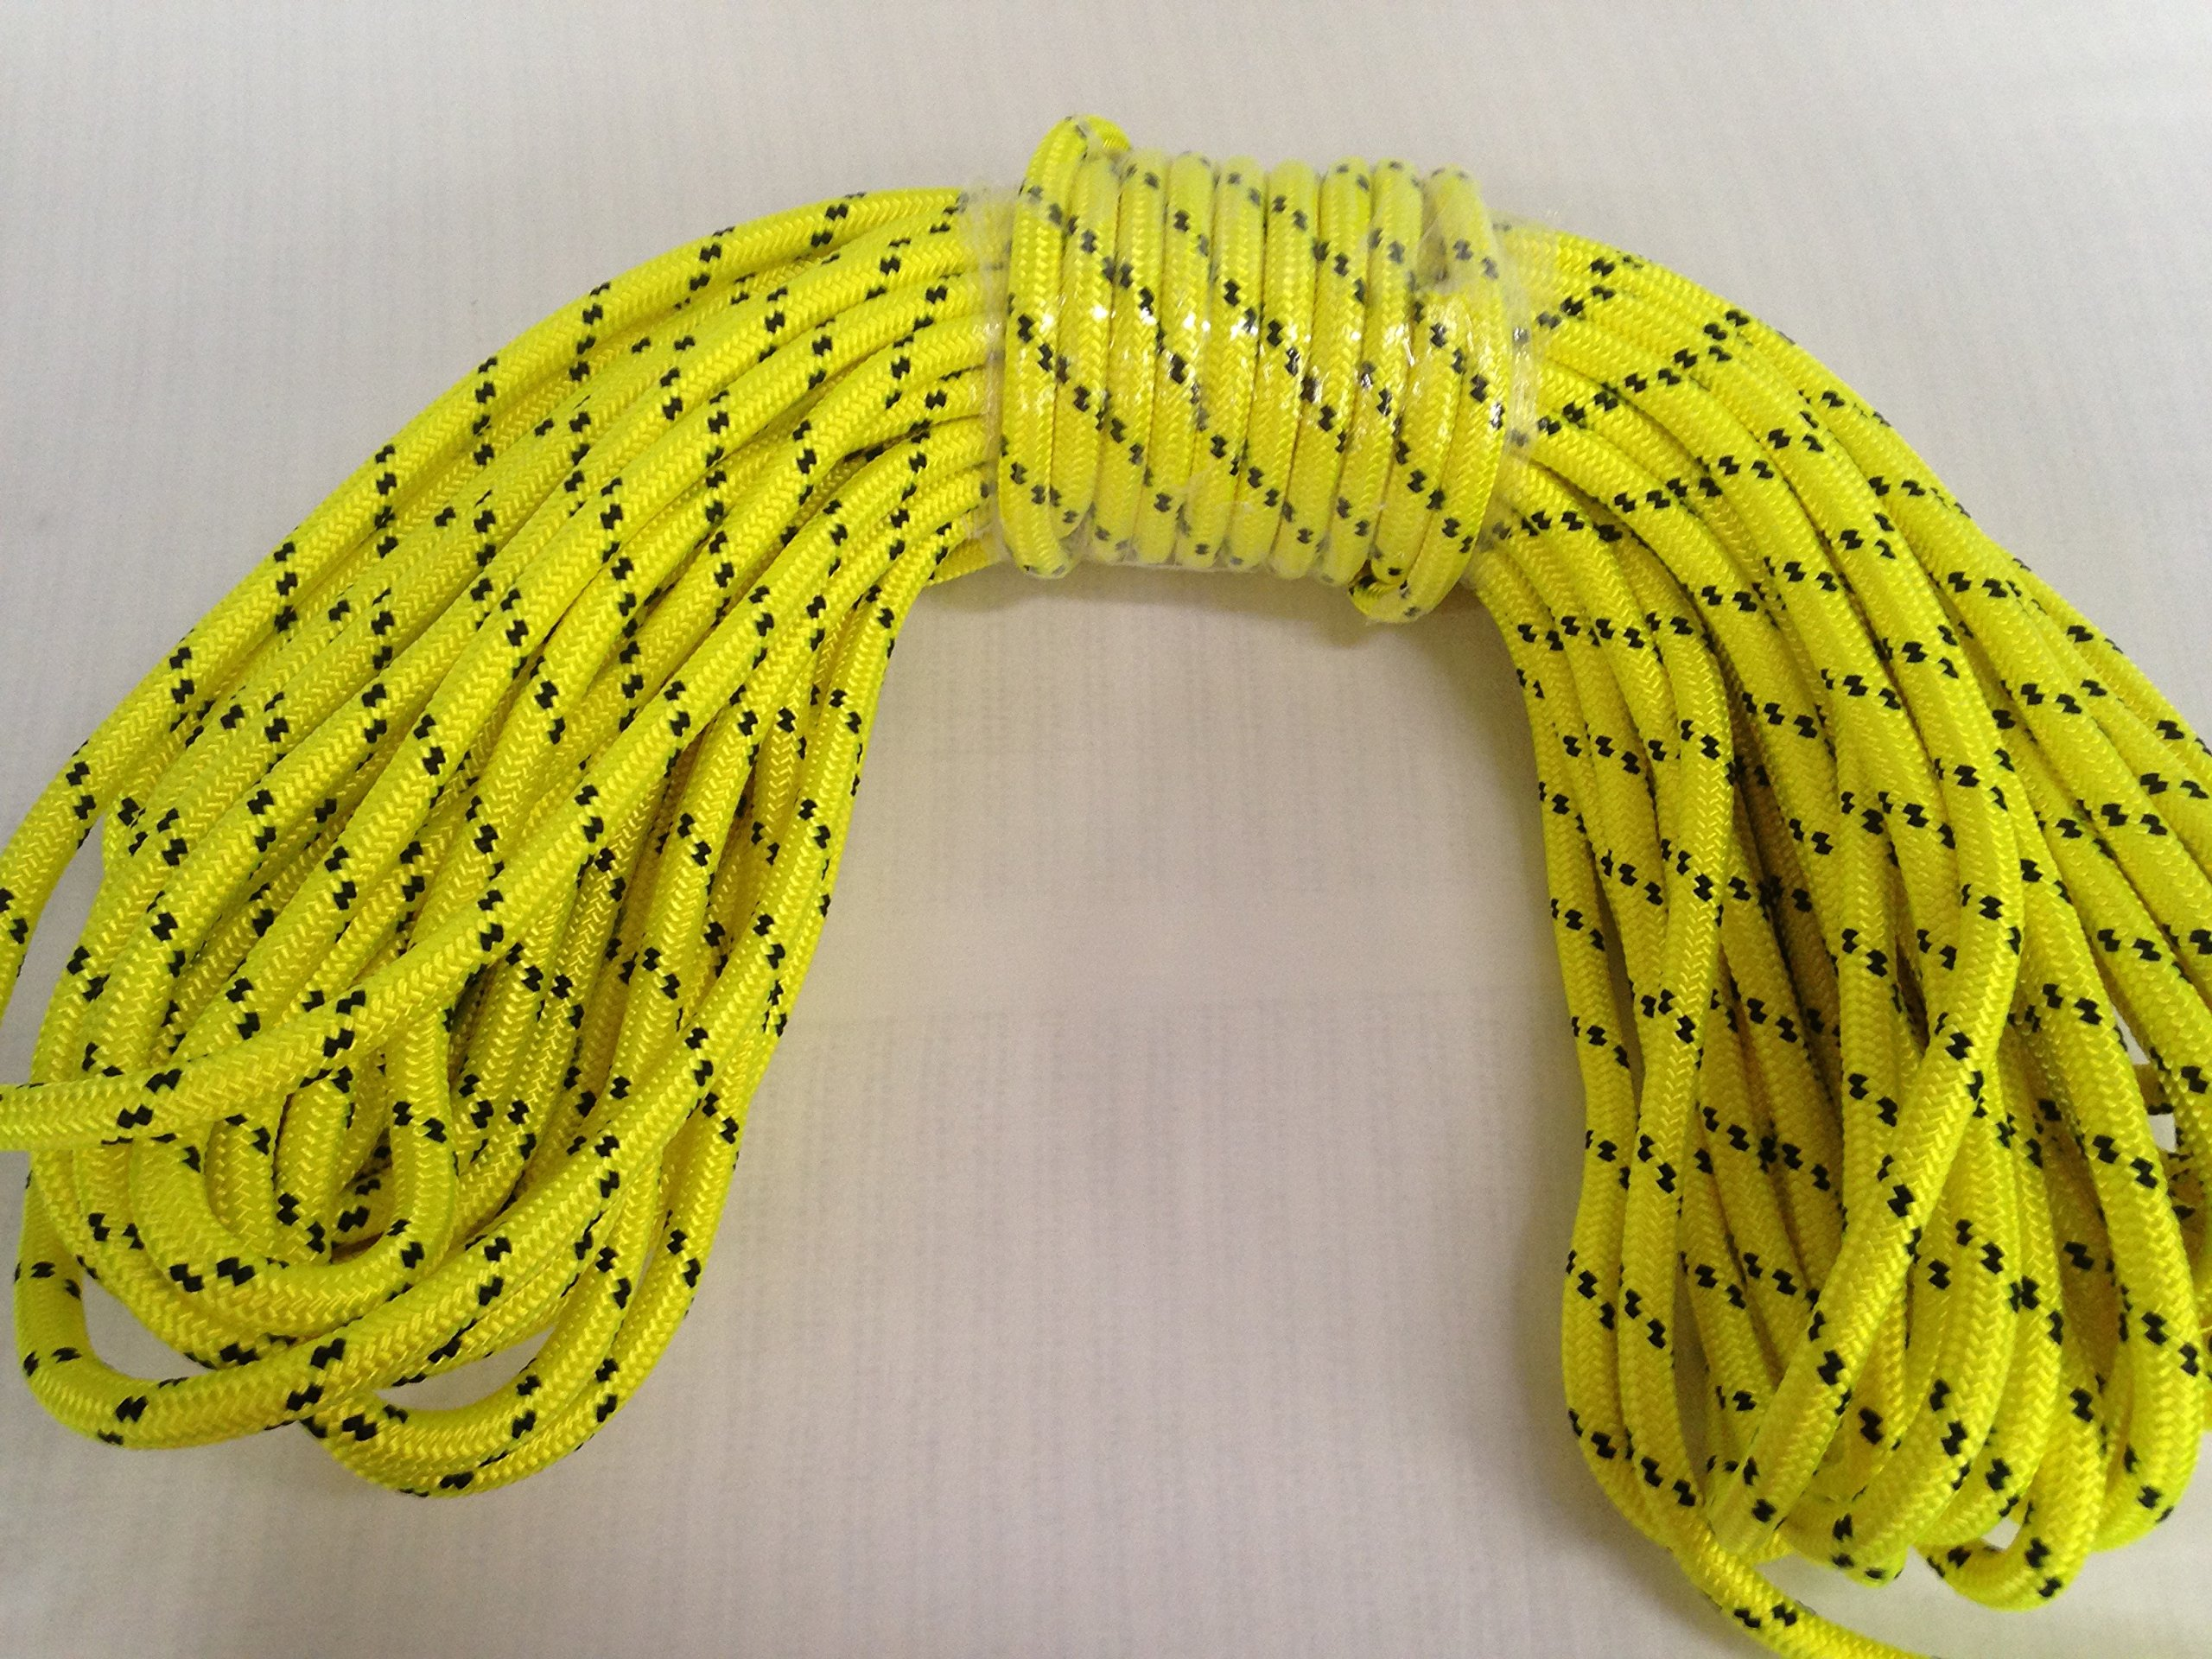 1/2'' X 200' Double Braided Polyester Arborist Tree Rope, Yellow by Blue Ox Rope (Image #2)